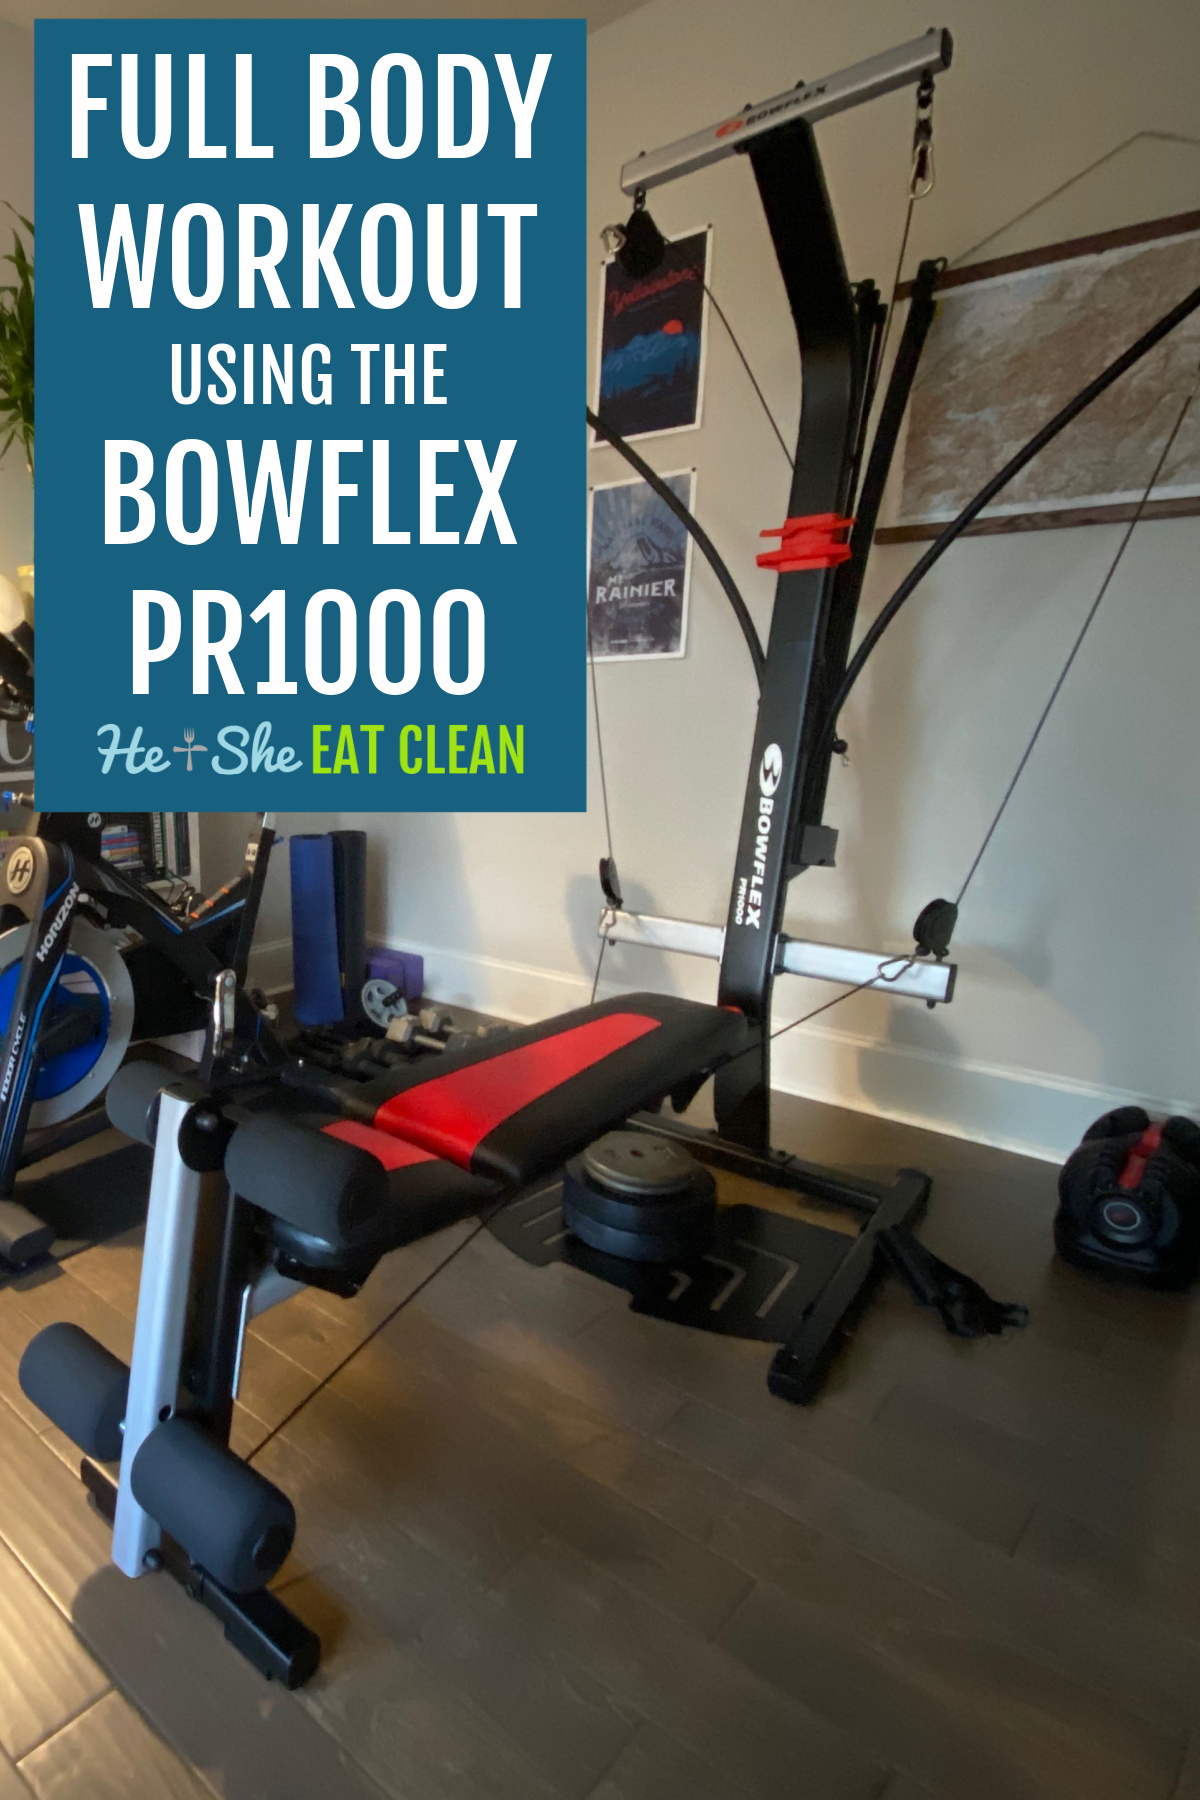 Bowflex PR1000 workout equipment with a bike on the side and weights on the floor